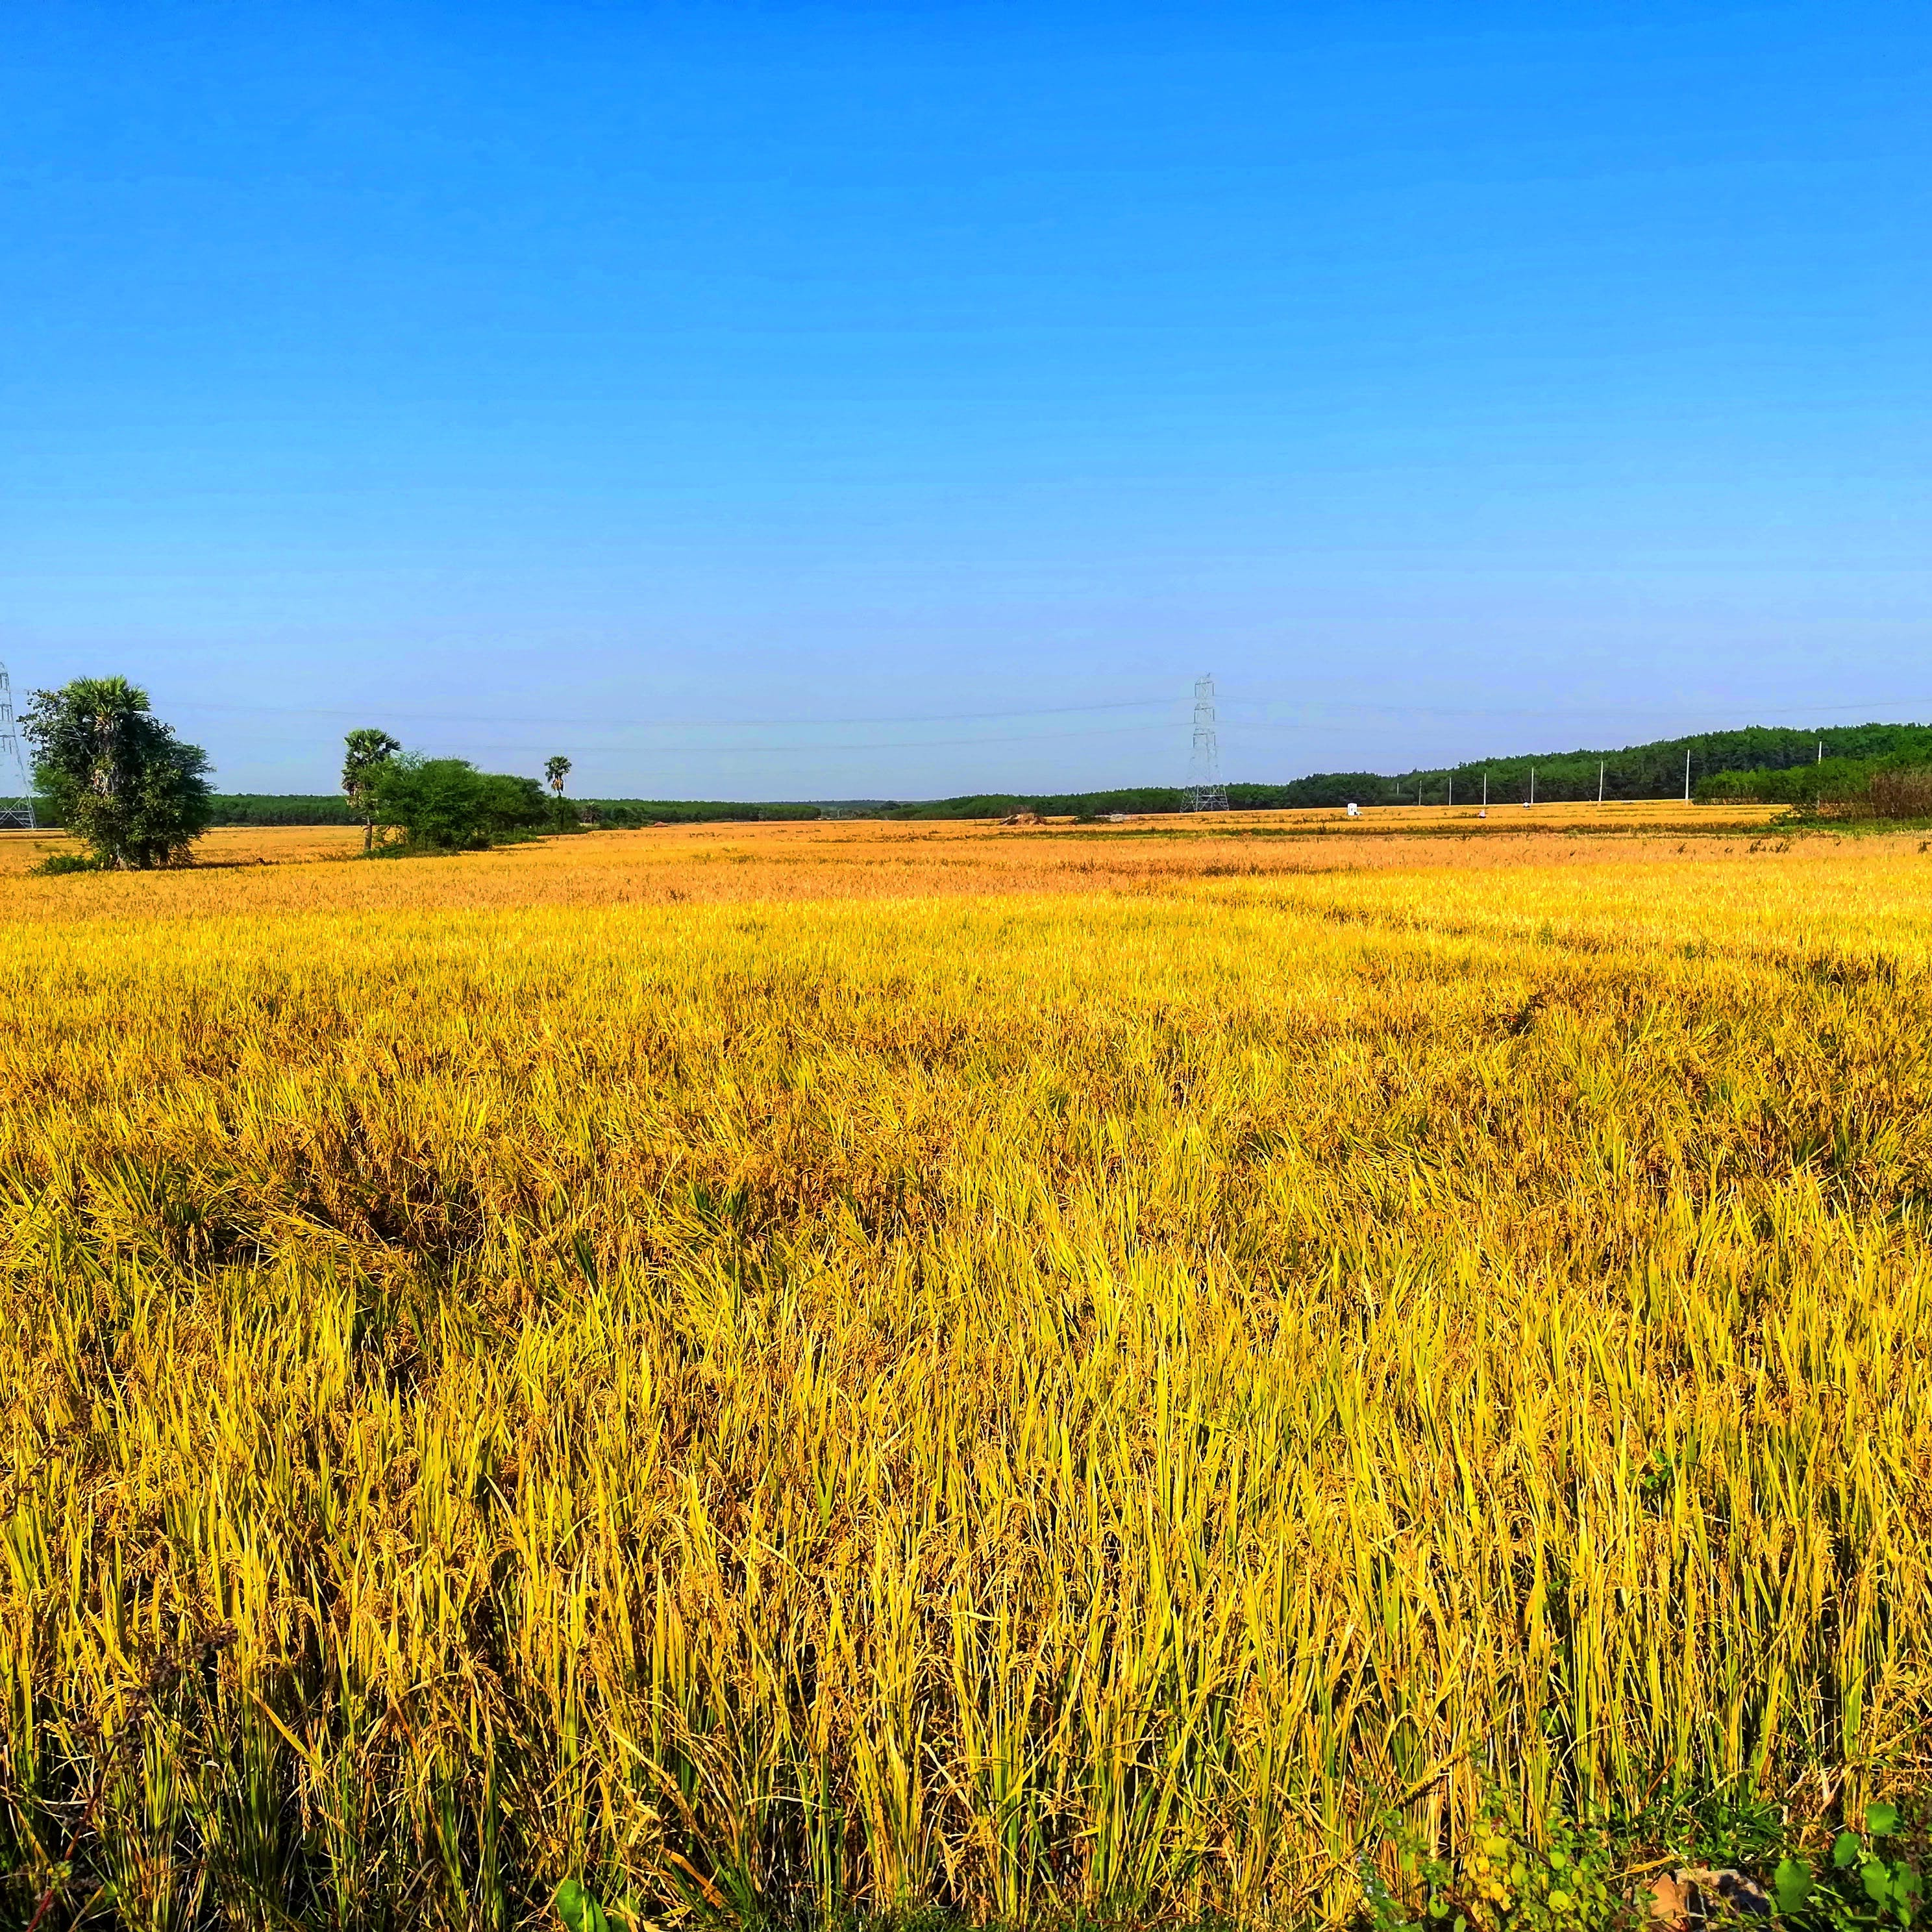 Free stock photo of food crop, harvest time, Paddy crop, rice field